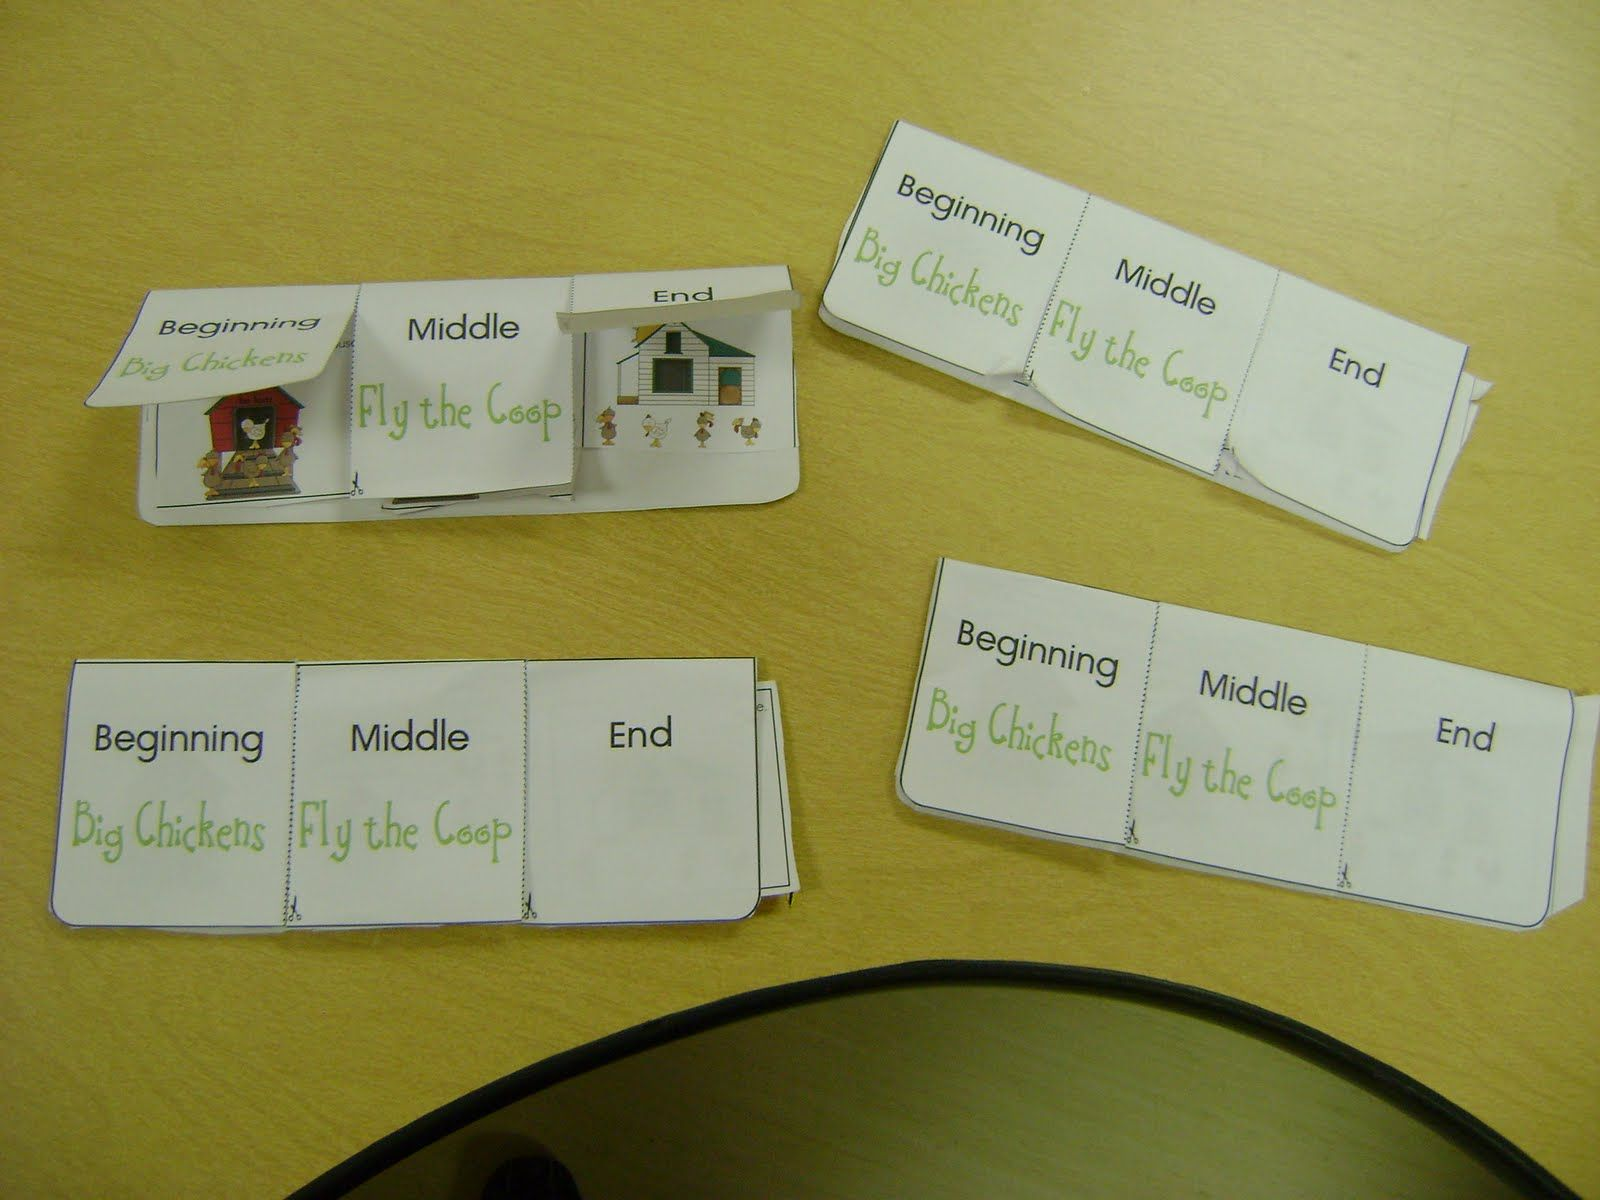 math worksheet : 1000 images about beginning middle and end on pinterest  : Beginning Middle End Worksheet Kindergarten